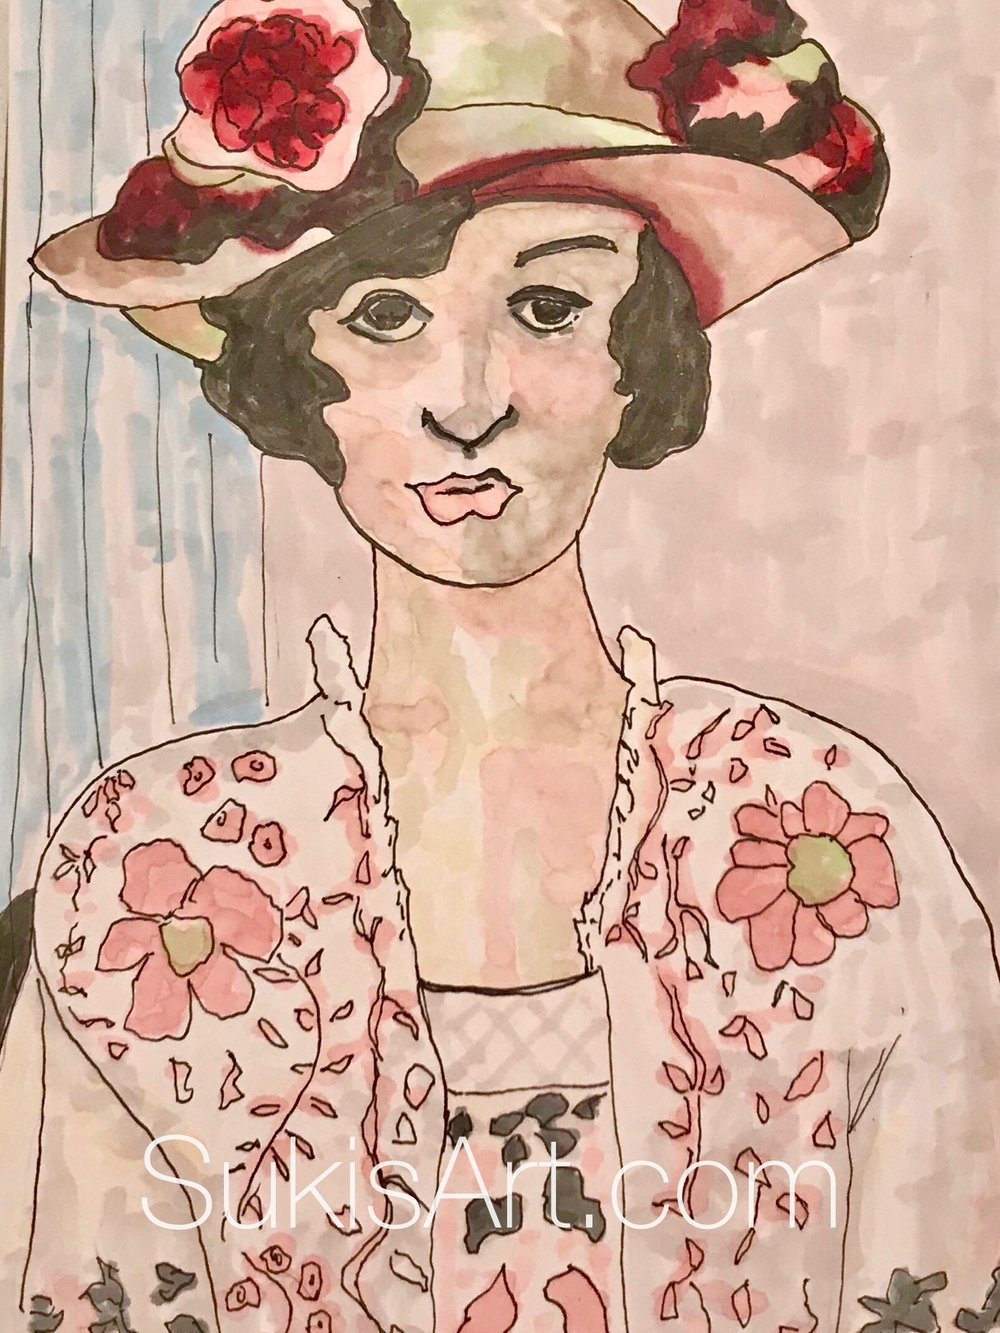 """The original by Matisse is titled """"Woman with a Flowered Hat"""" and is in oil. 1919 My version is pen & ink on paper, 2018.."""